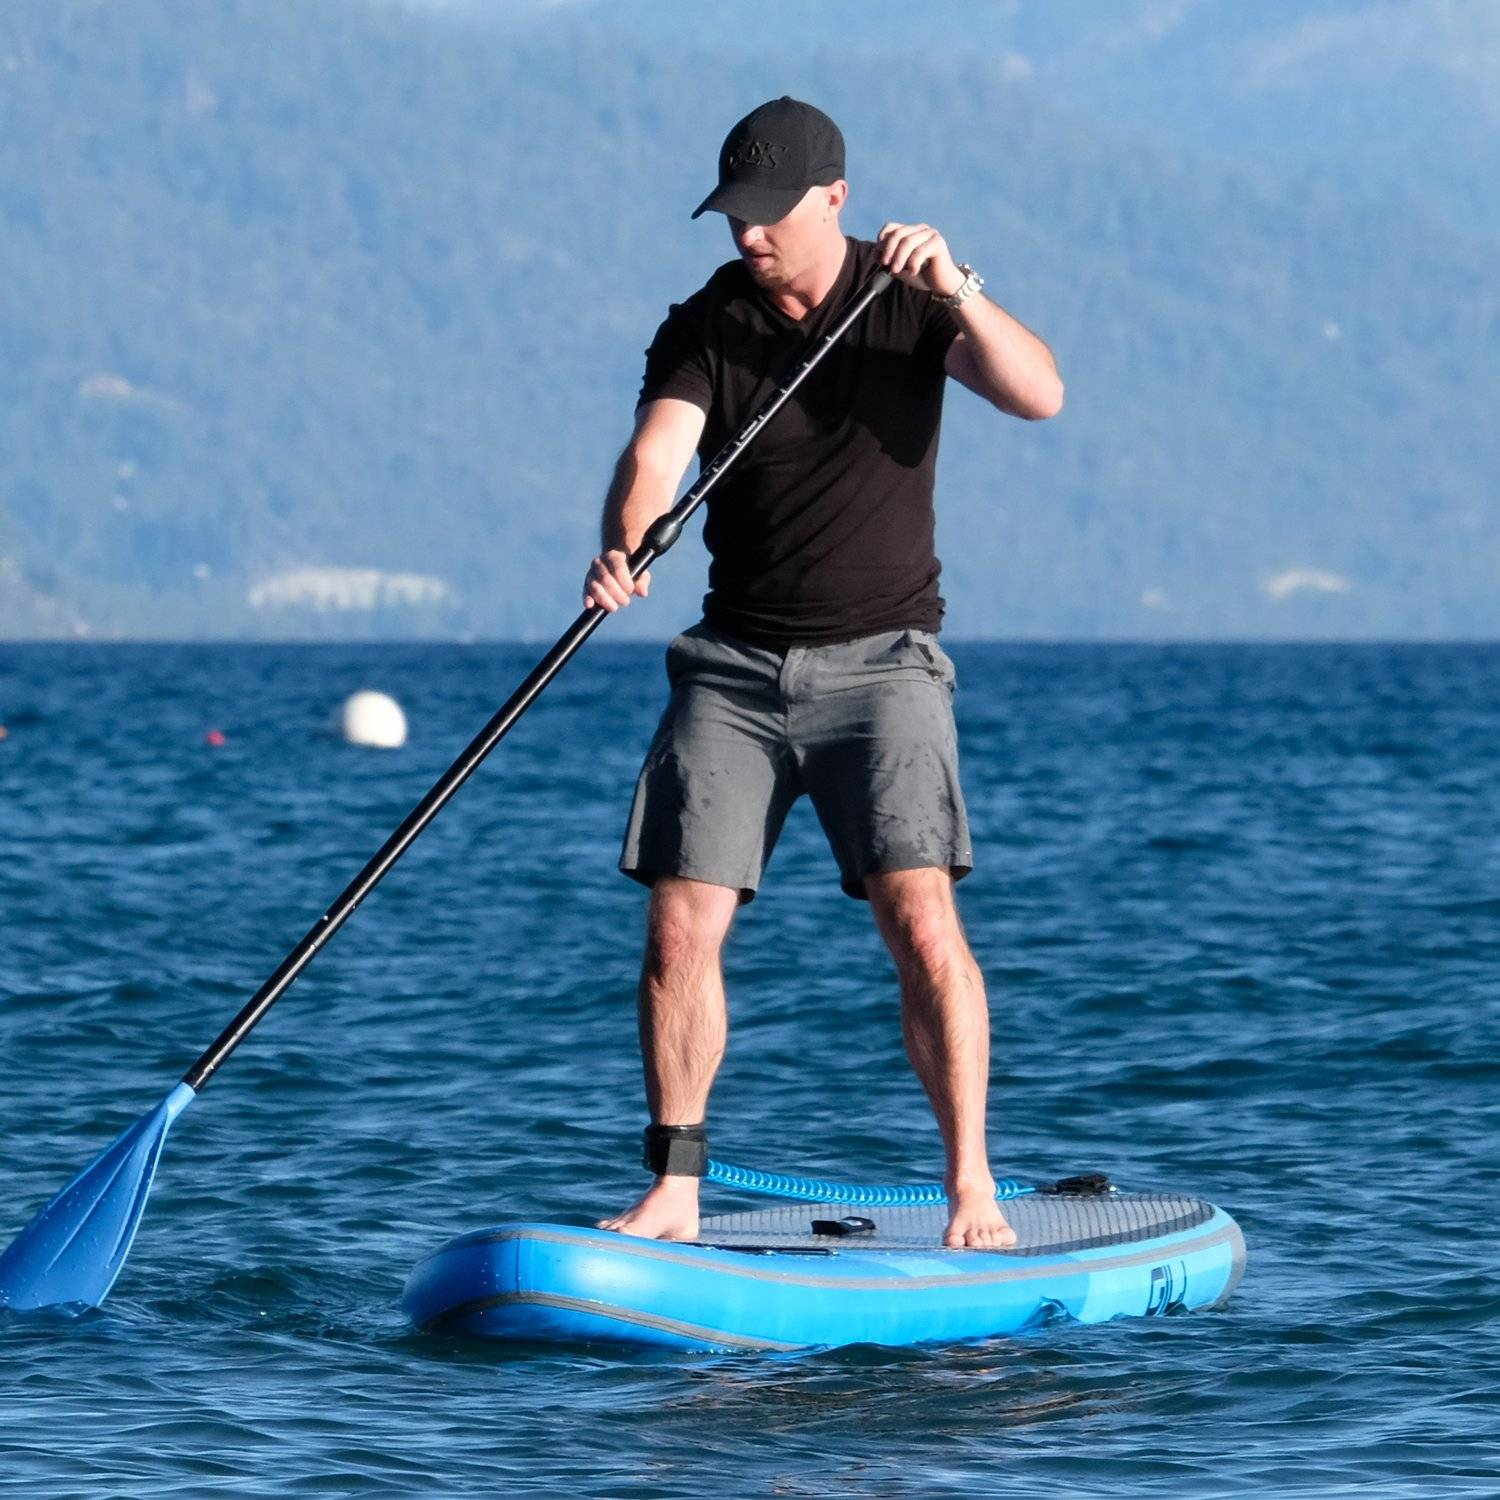 gili sup in action - image gili-sup-in-action on https://supboardgear.com